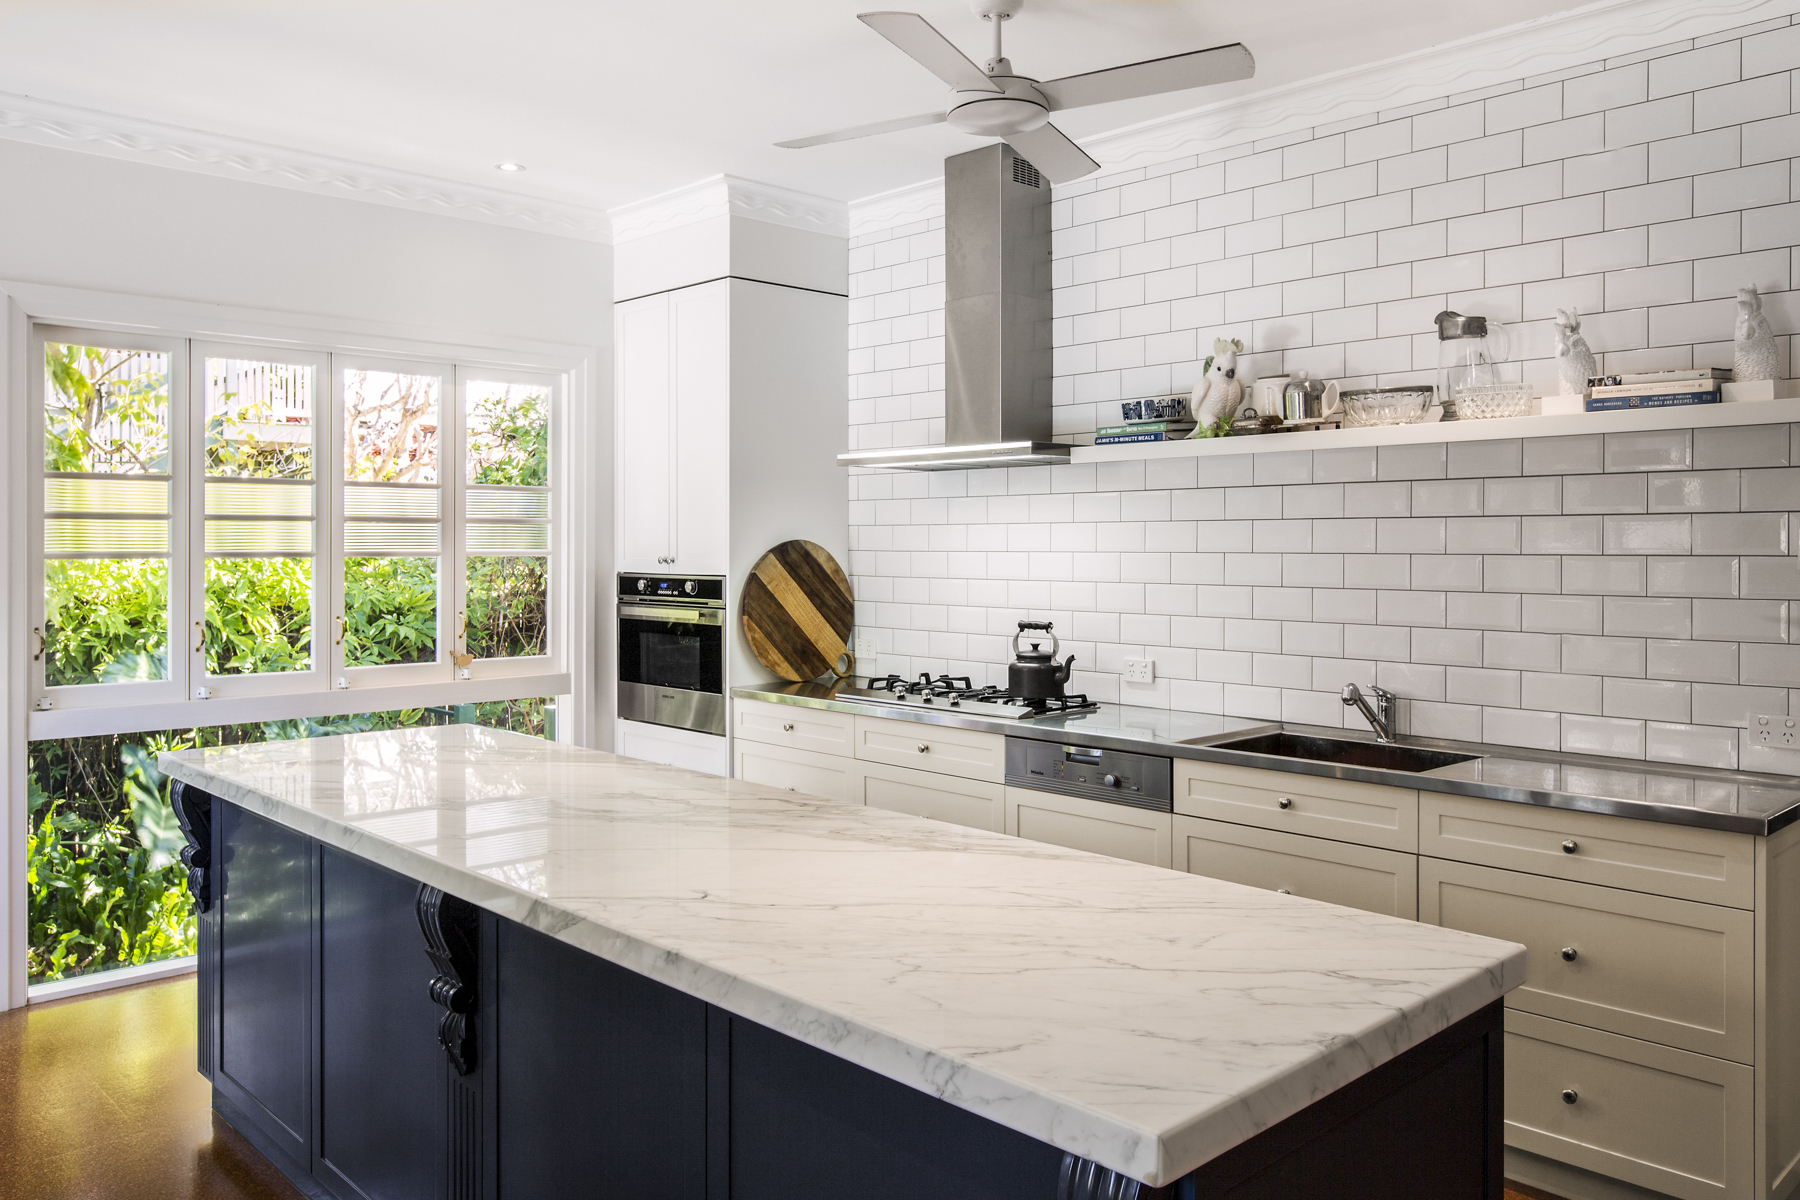 Uncategorized Brisbane Kitchen Design kitchens brisbane design and renovations konstruct interior traditional country kitchen with natural marble